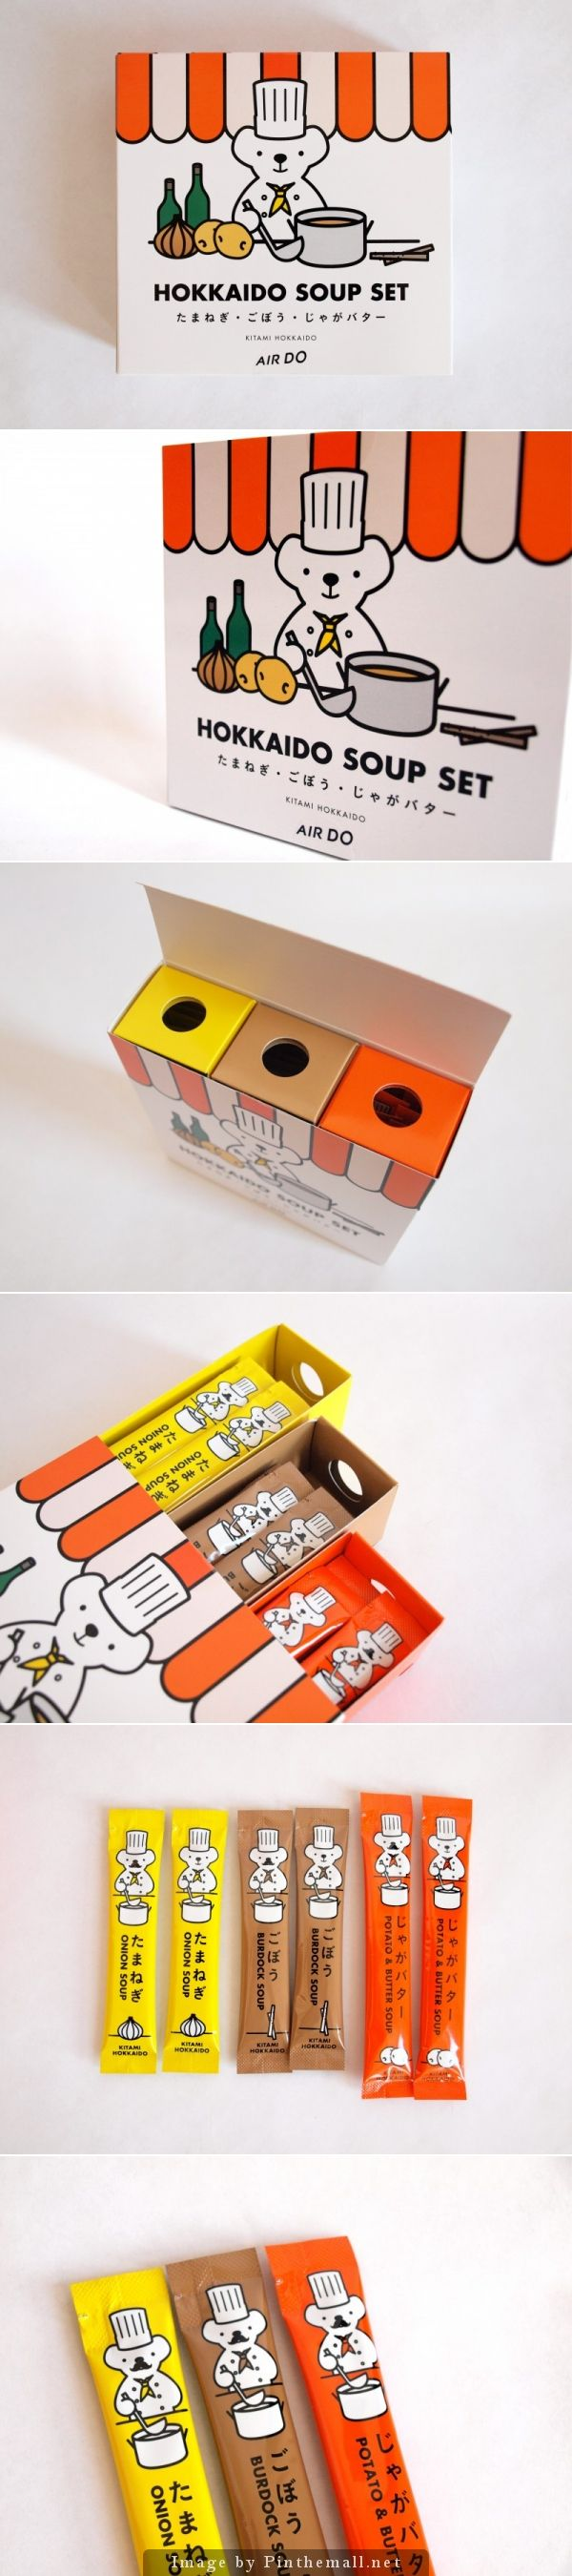 Unique Packaging Design, Hokkaido Soup Set via @Fanysilvam #Packaging #Design